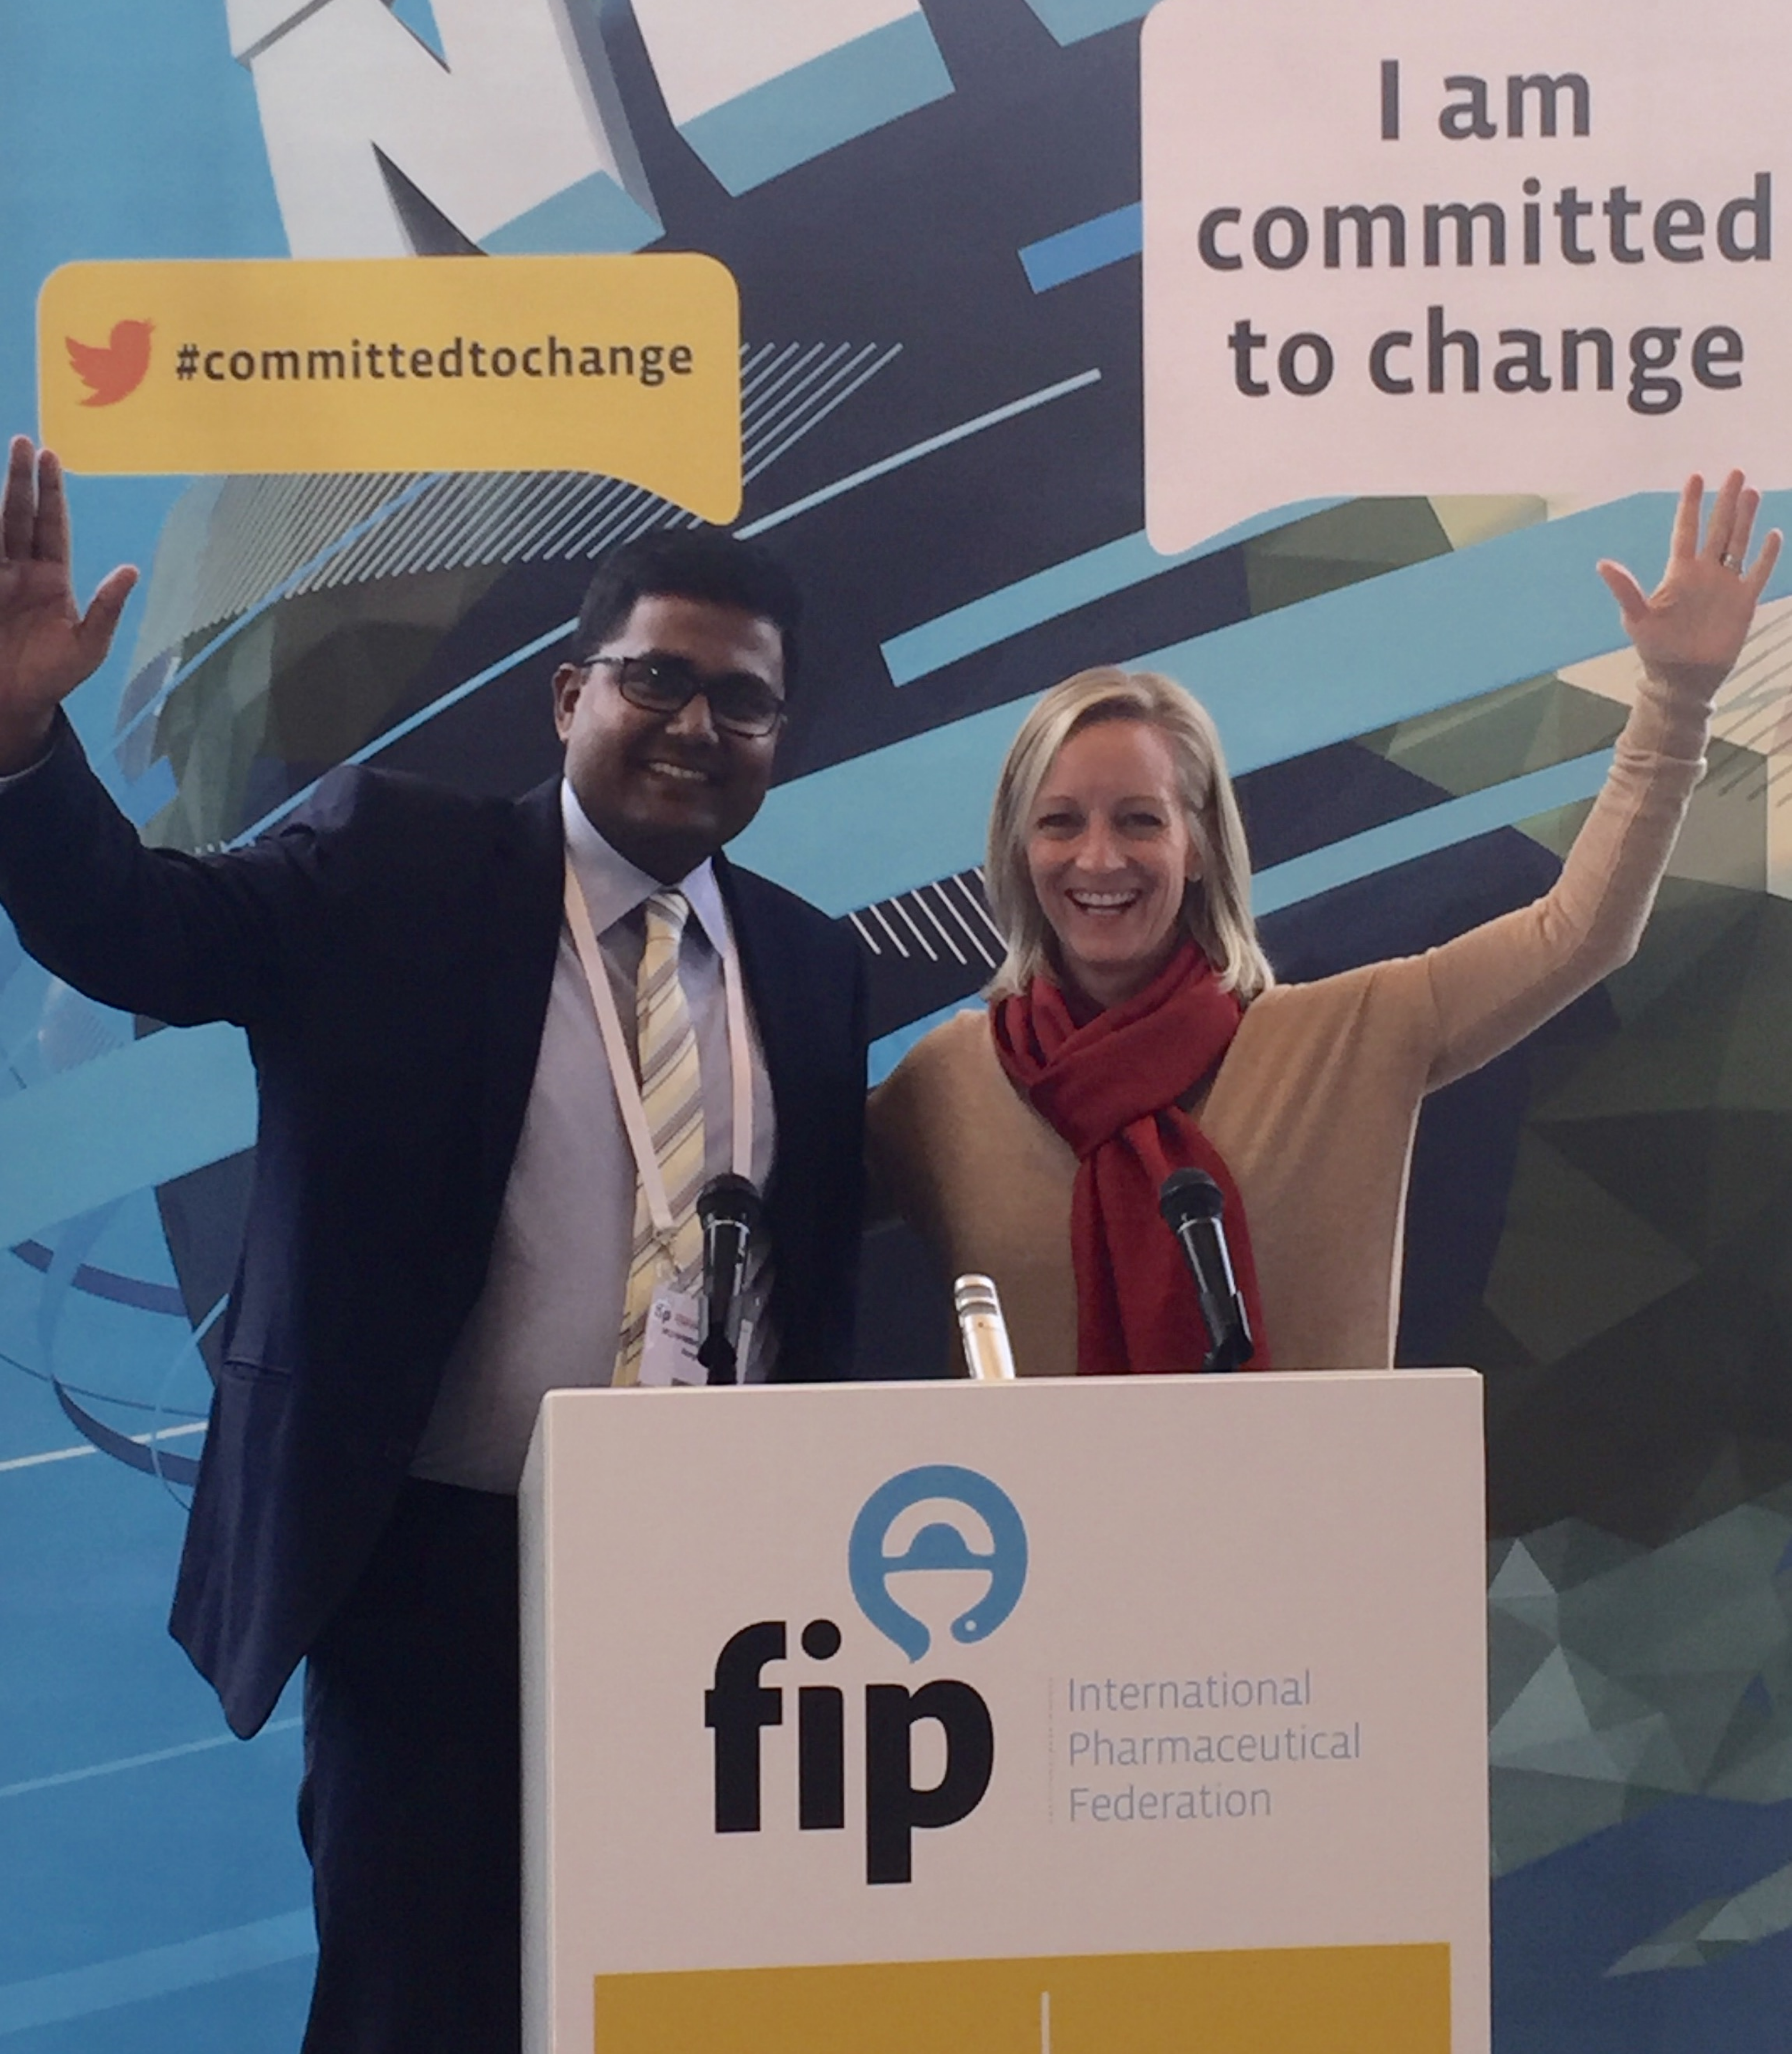 Bangladesh Country Director Mohammad Abusyed and CEO Tammy Allen publicize Vennue's commitment to global change while in Dusseldorf, Germany.